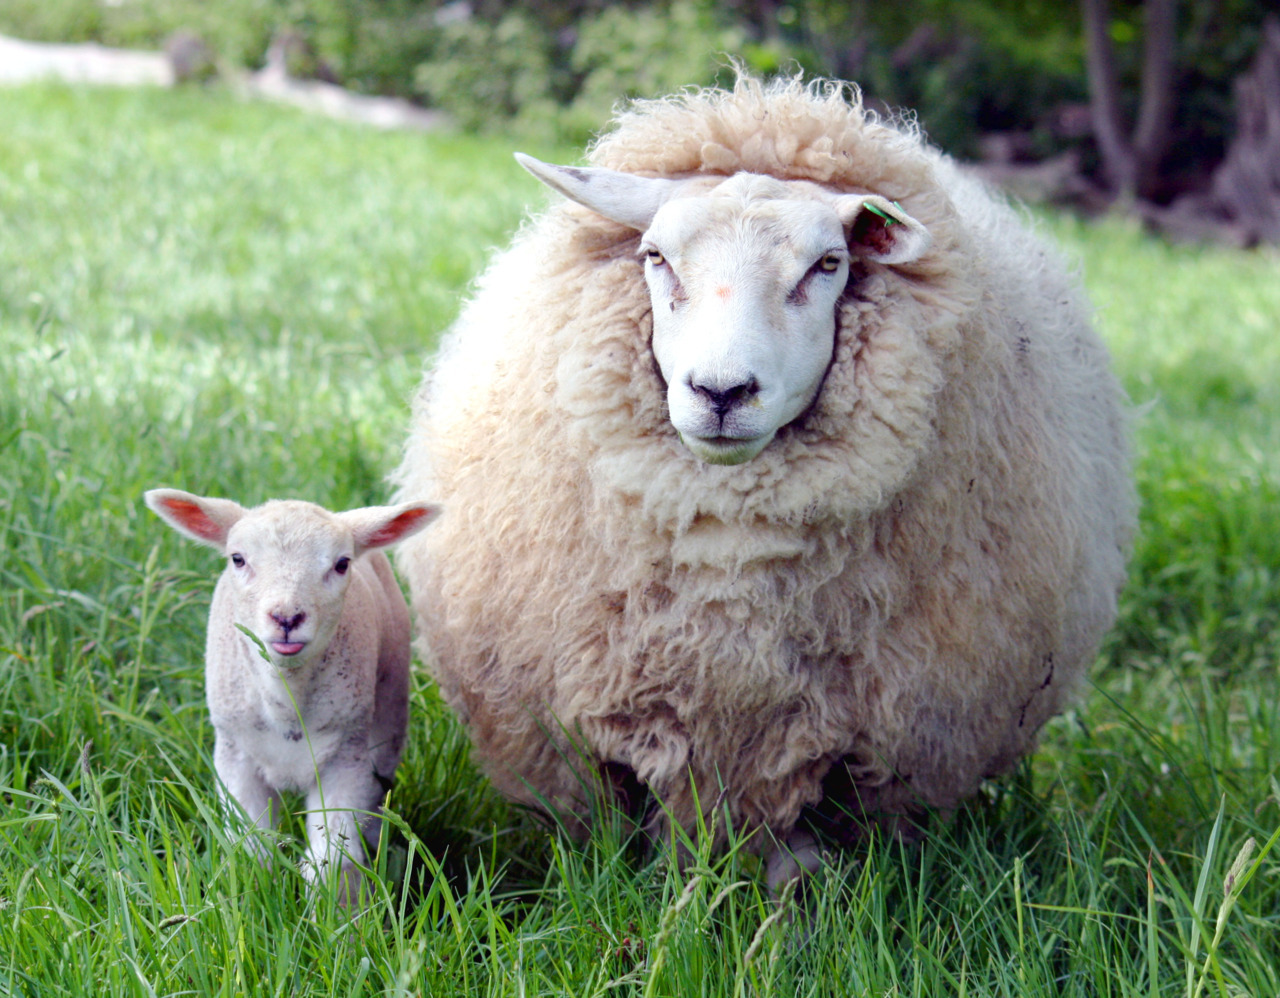 look a mama ewe and a baby lamb with its tongue sticking out :p